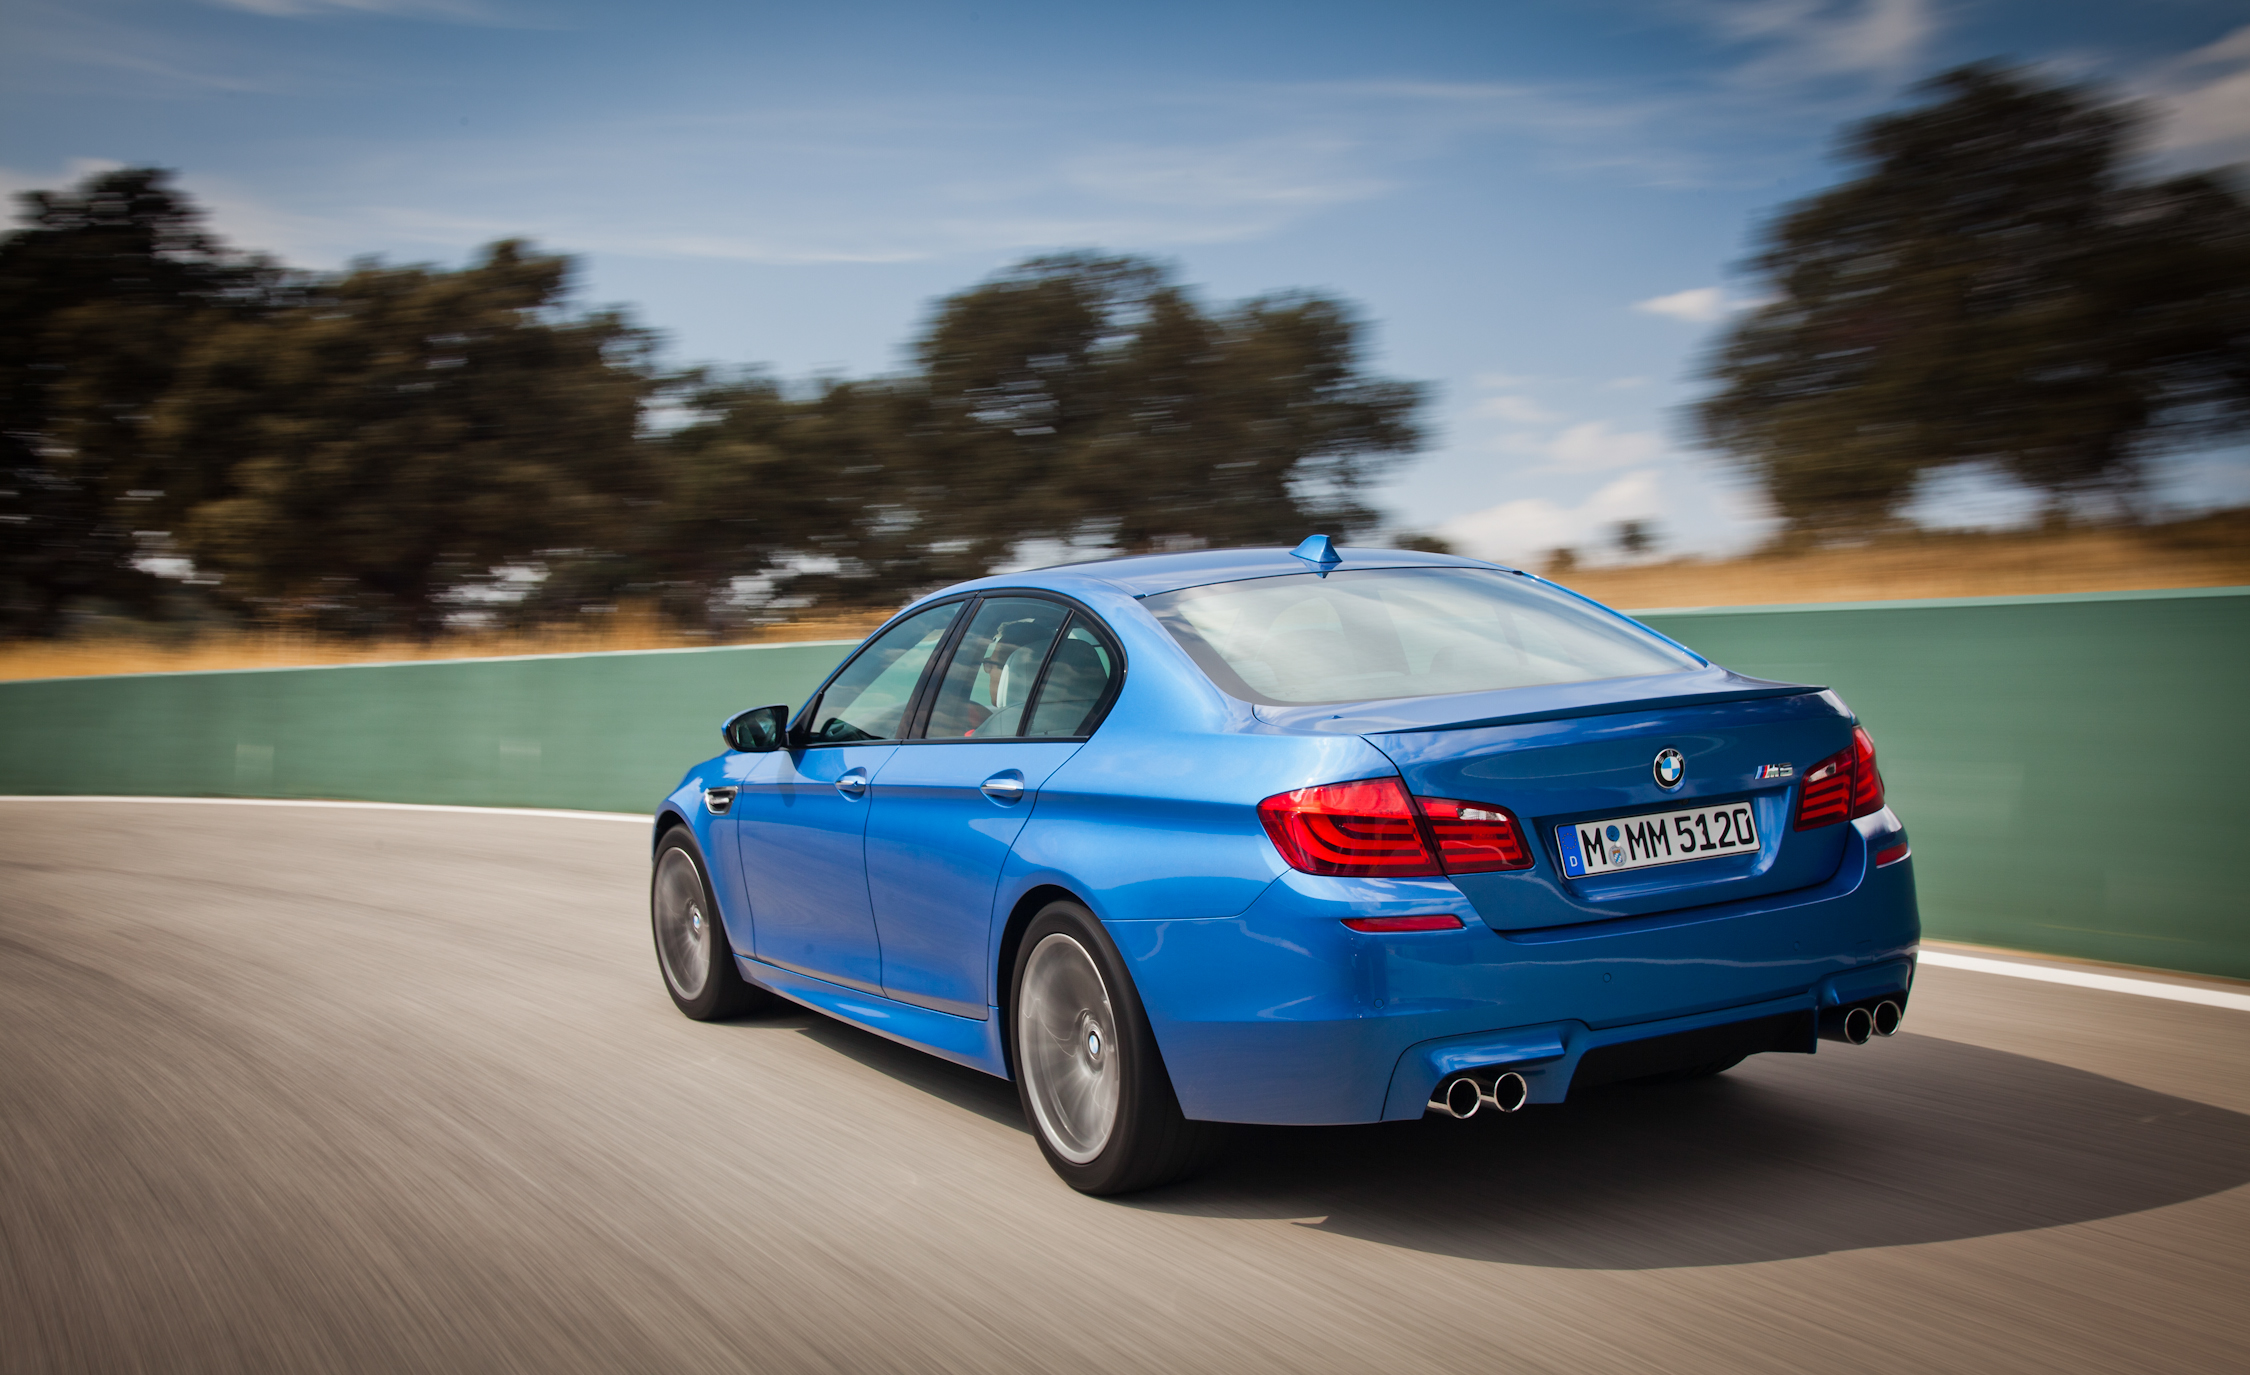 2013 BMW M5 Test Drive Rear And Side View (View 5 of 22)